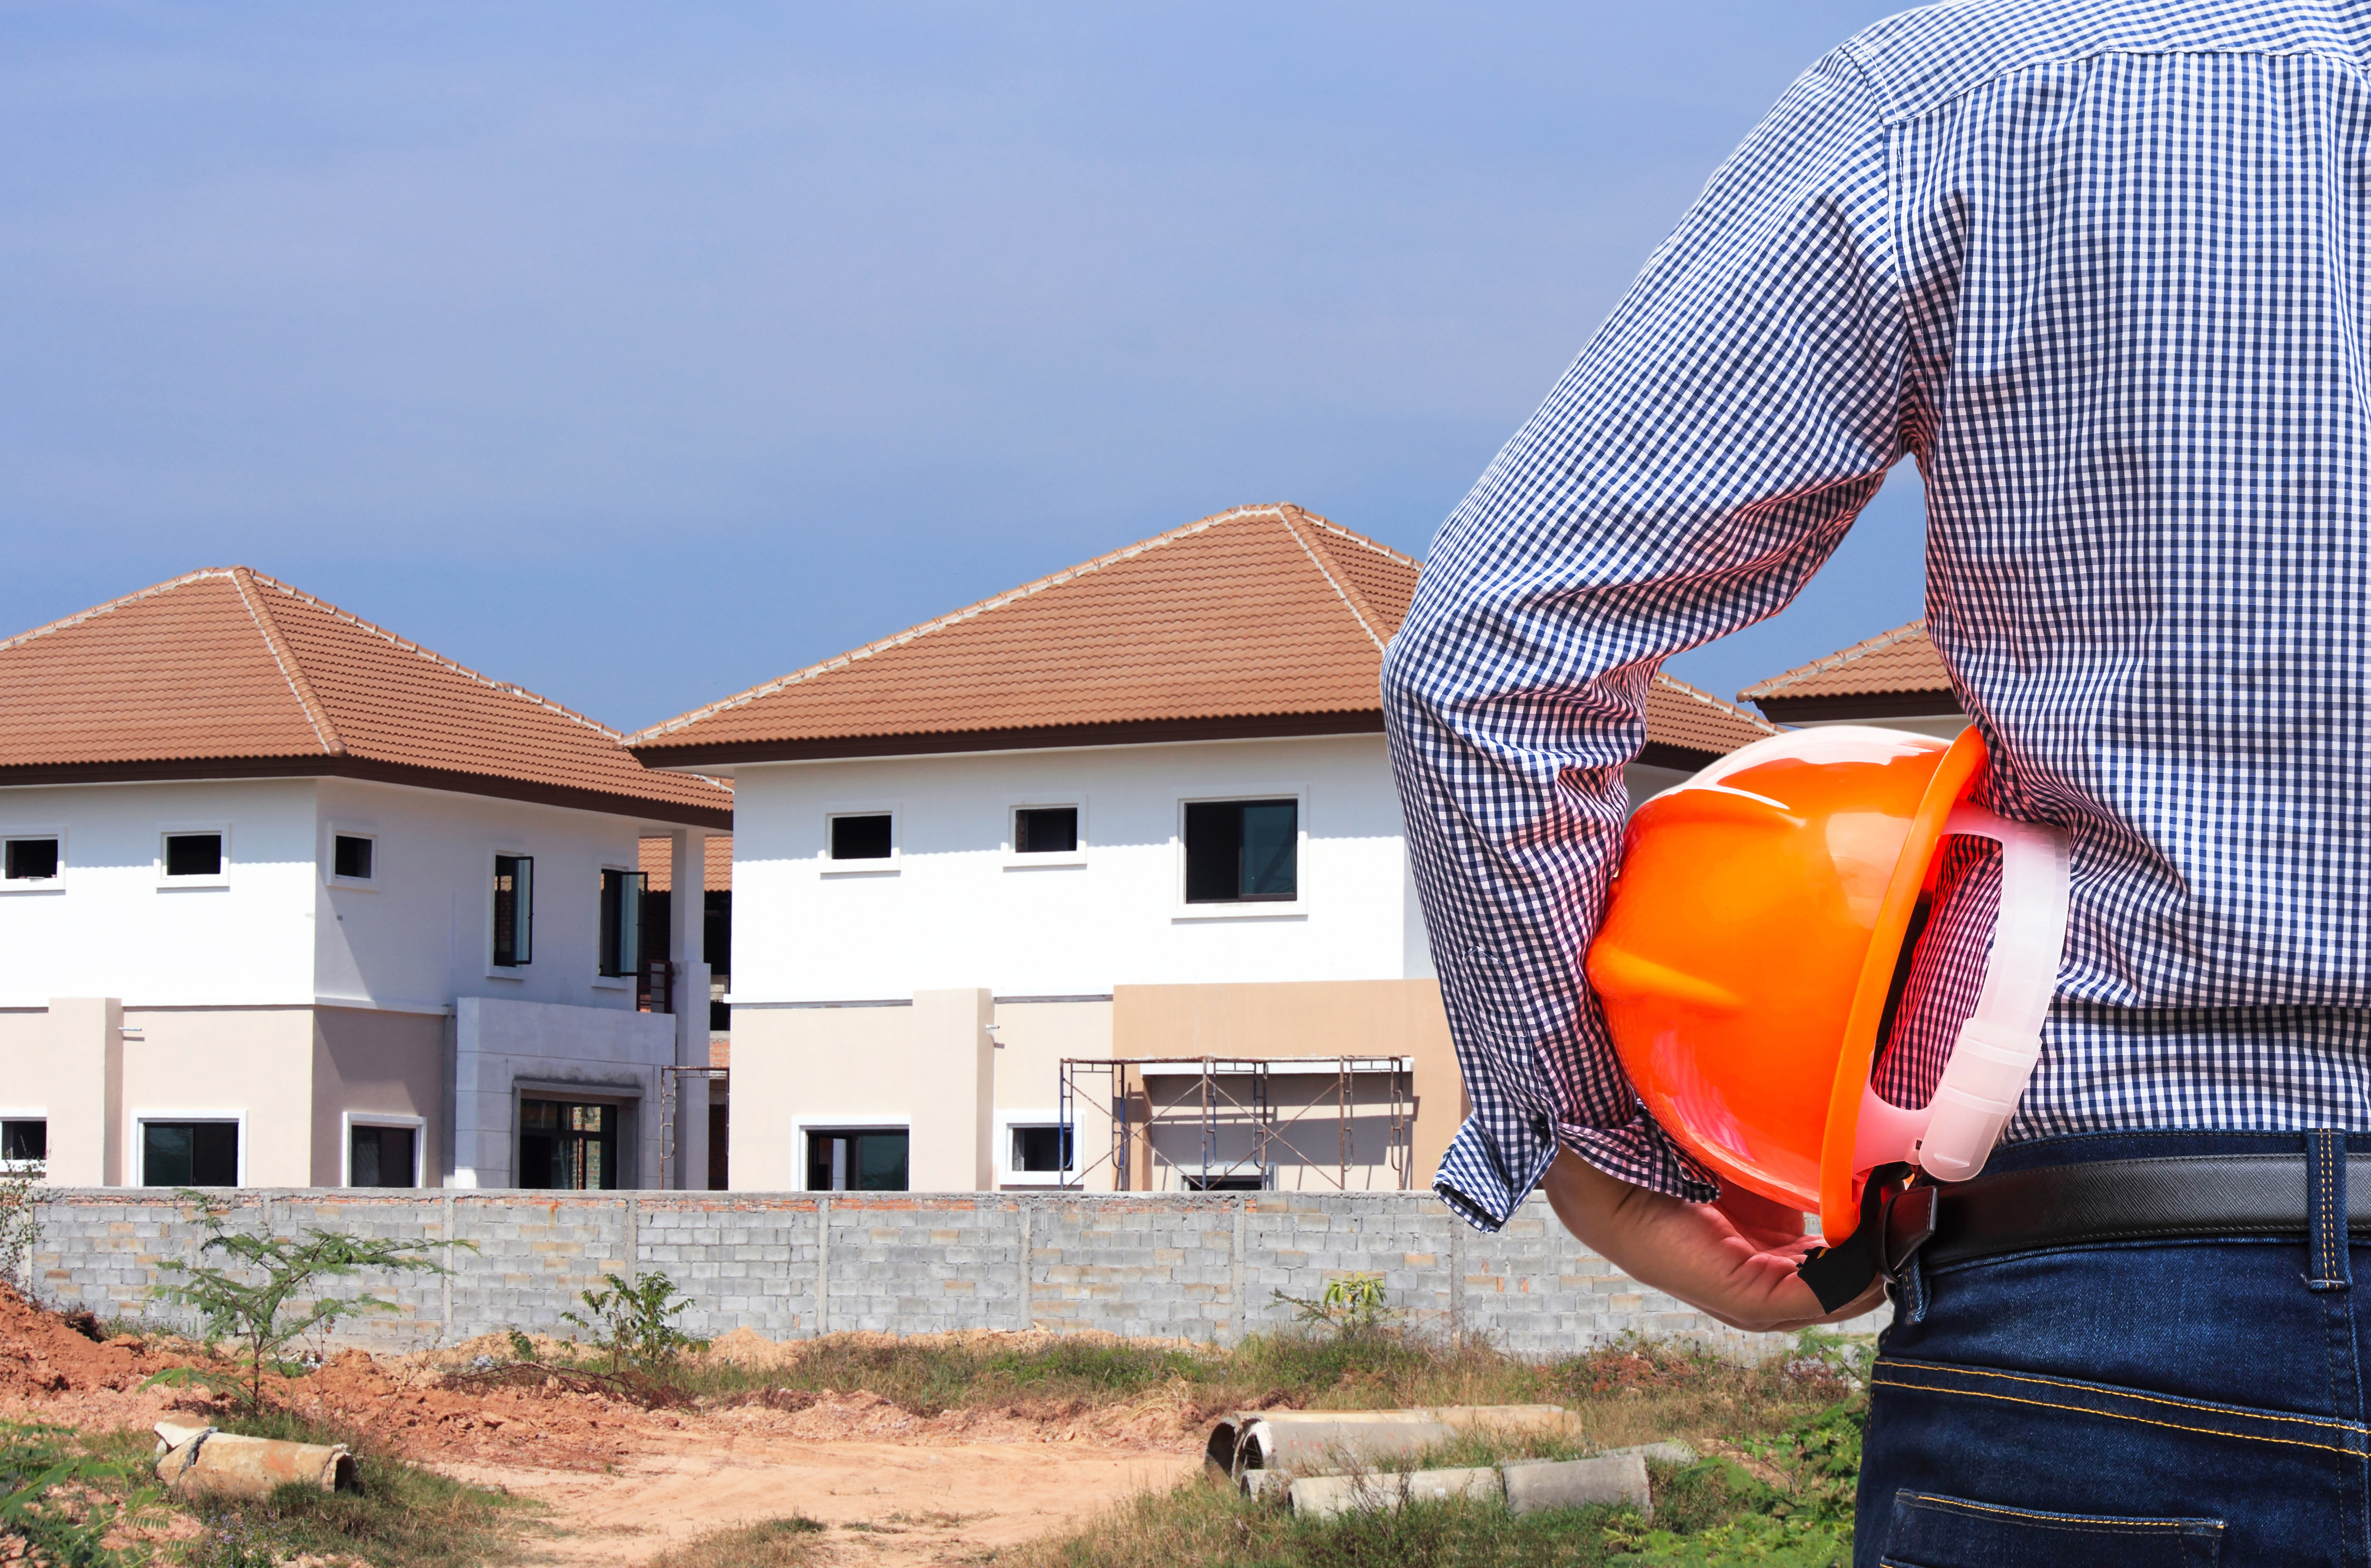 resident engineer holding yellow safety helmet in construction new home housing development background